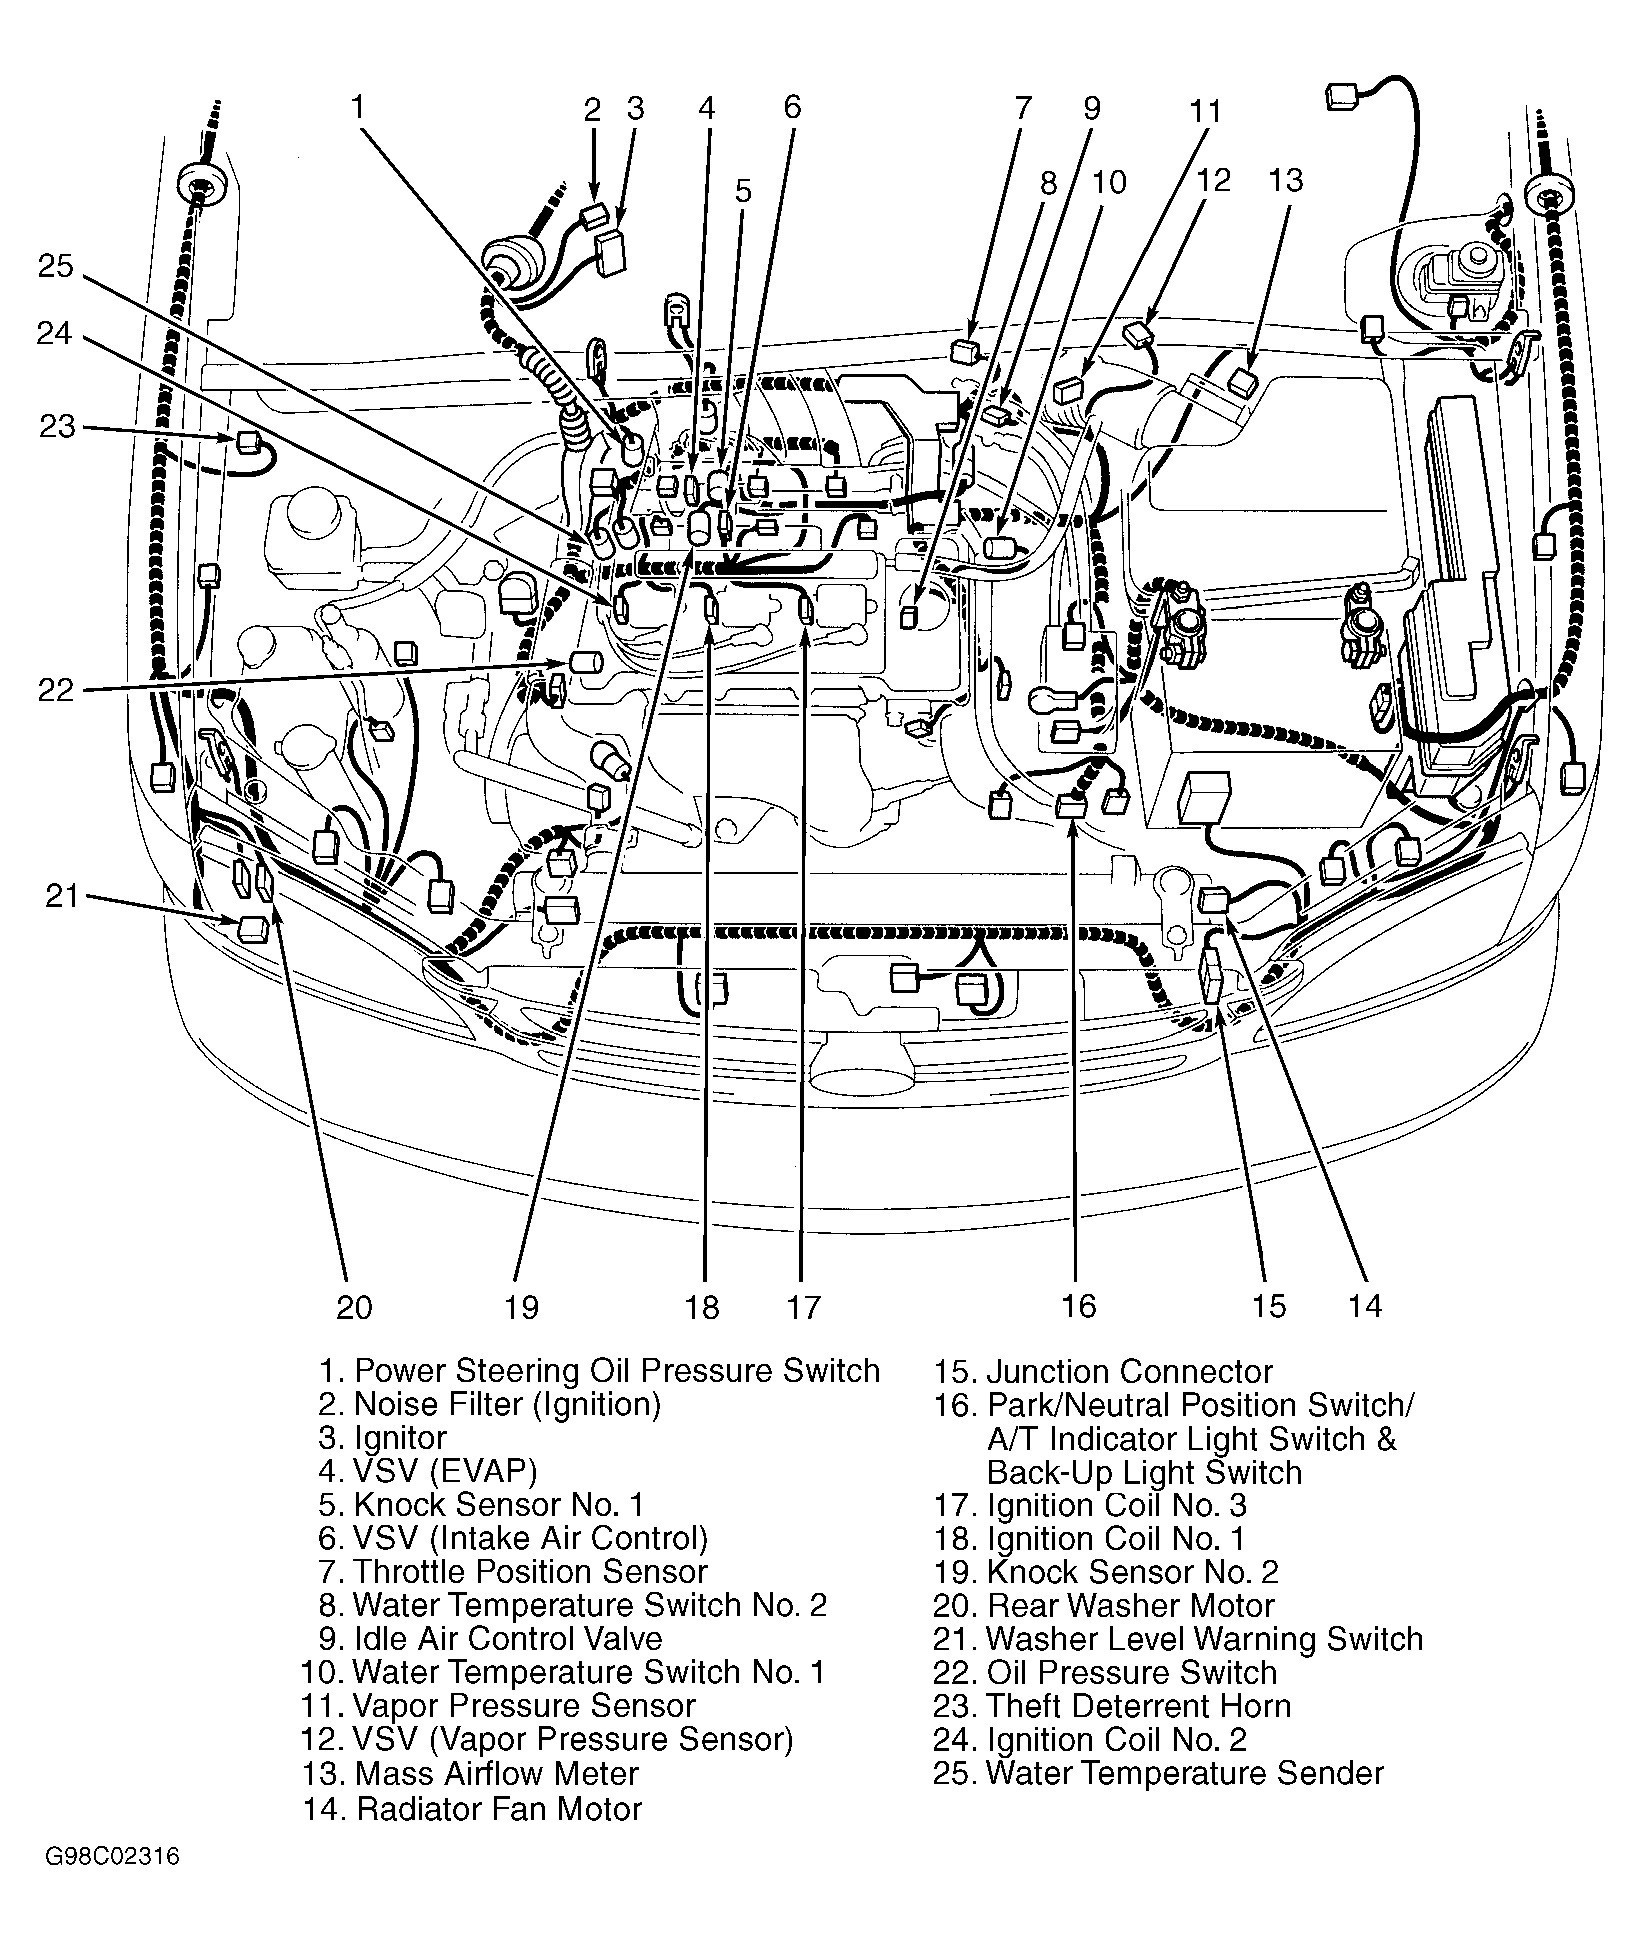 1994 toyota camry ignition control module engine wiring diagram 1994 toyota camry 4 cyl at